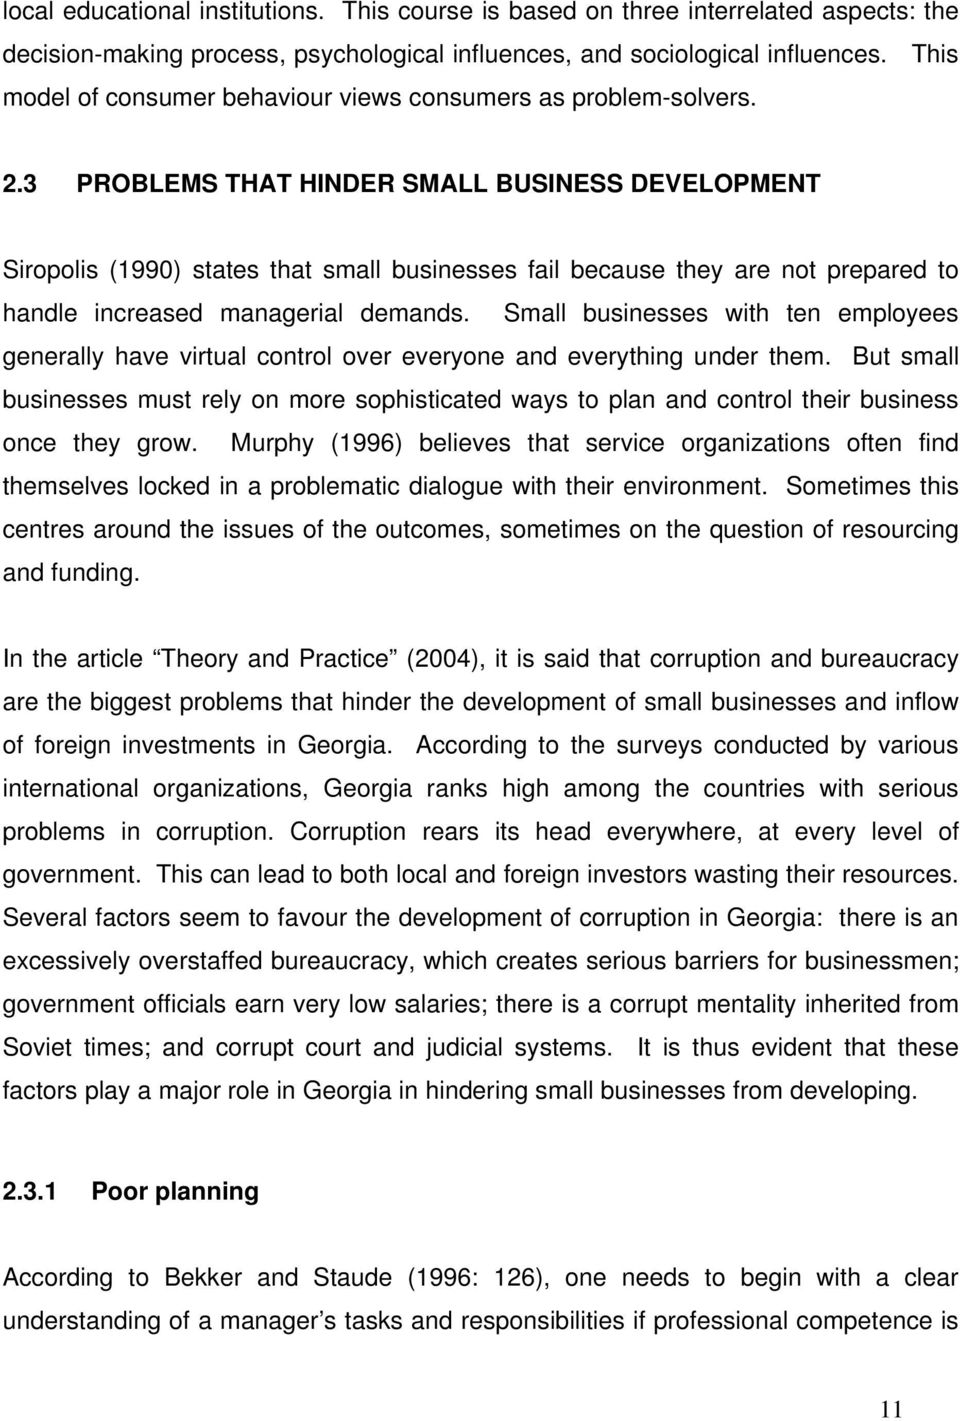 3 PROBLEMS THAT HINDER SMALL BUSINESS DEVELOPMENT Siropolis (1990) states that small businesses fail because they are not prepared to handle increased managerial demands.